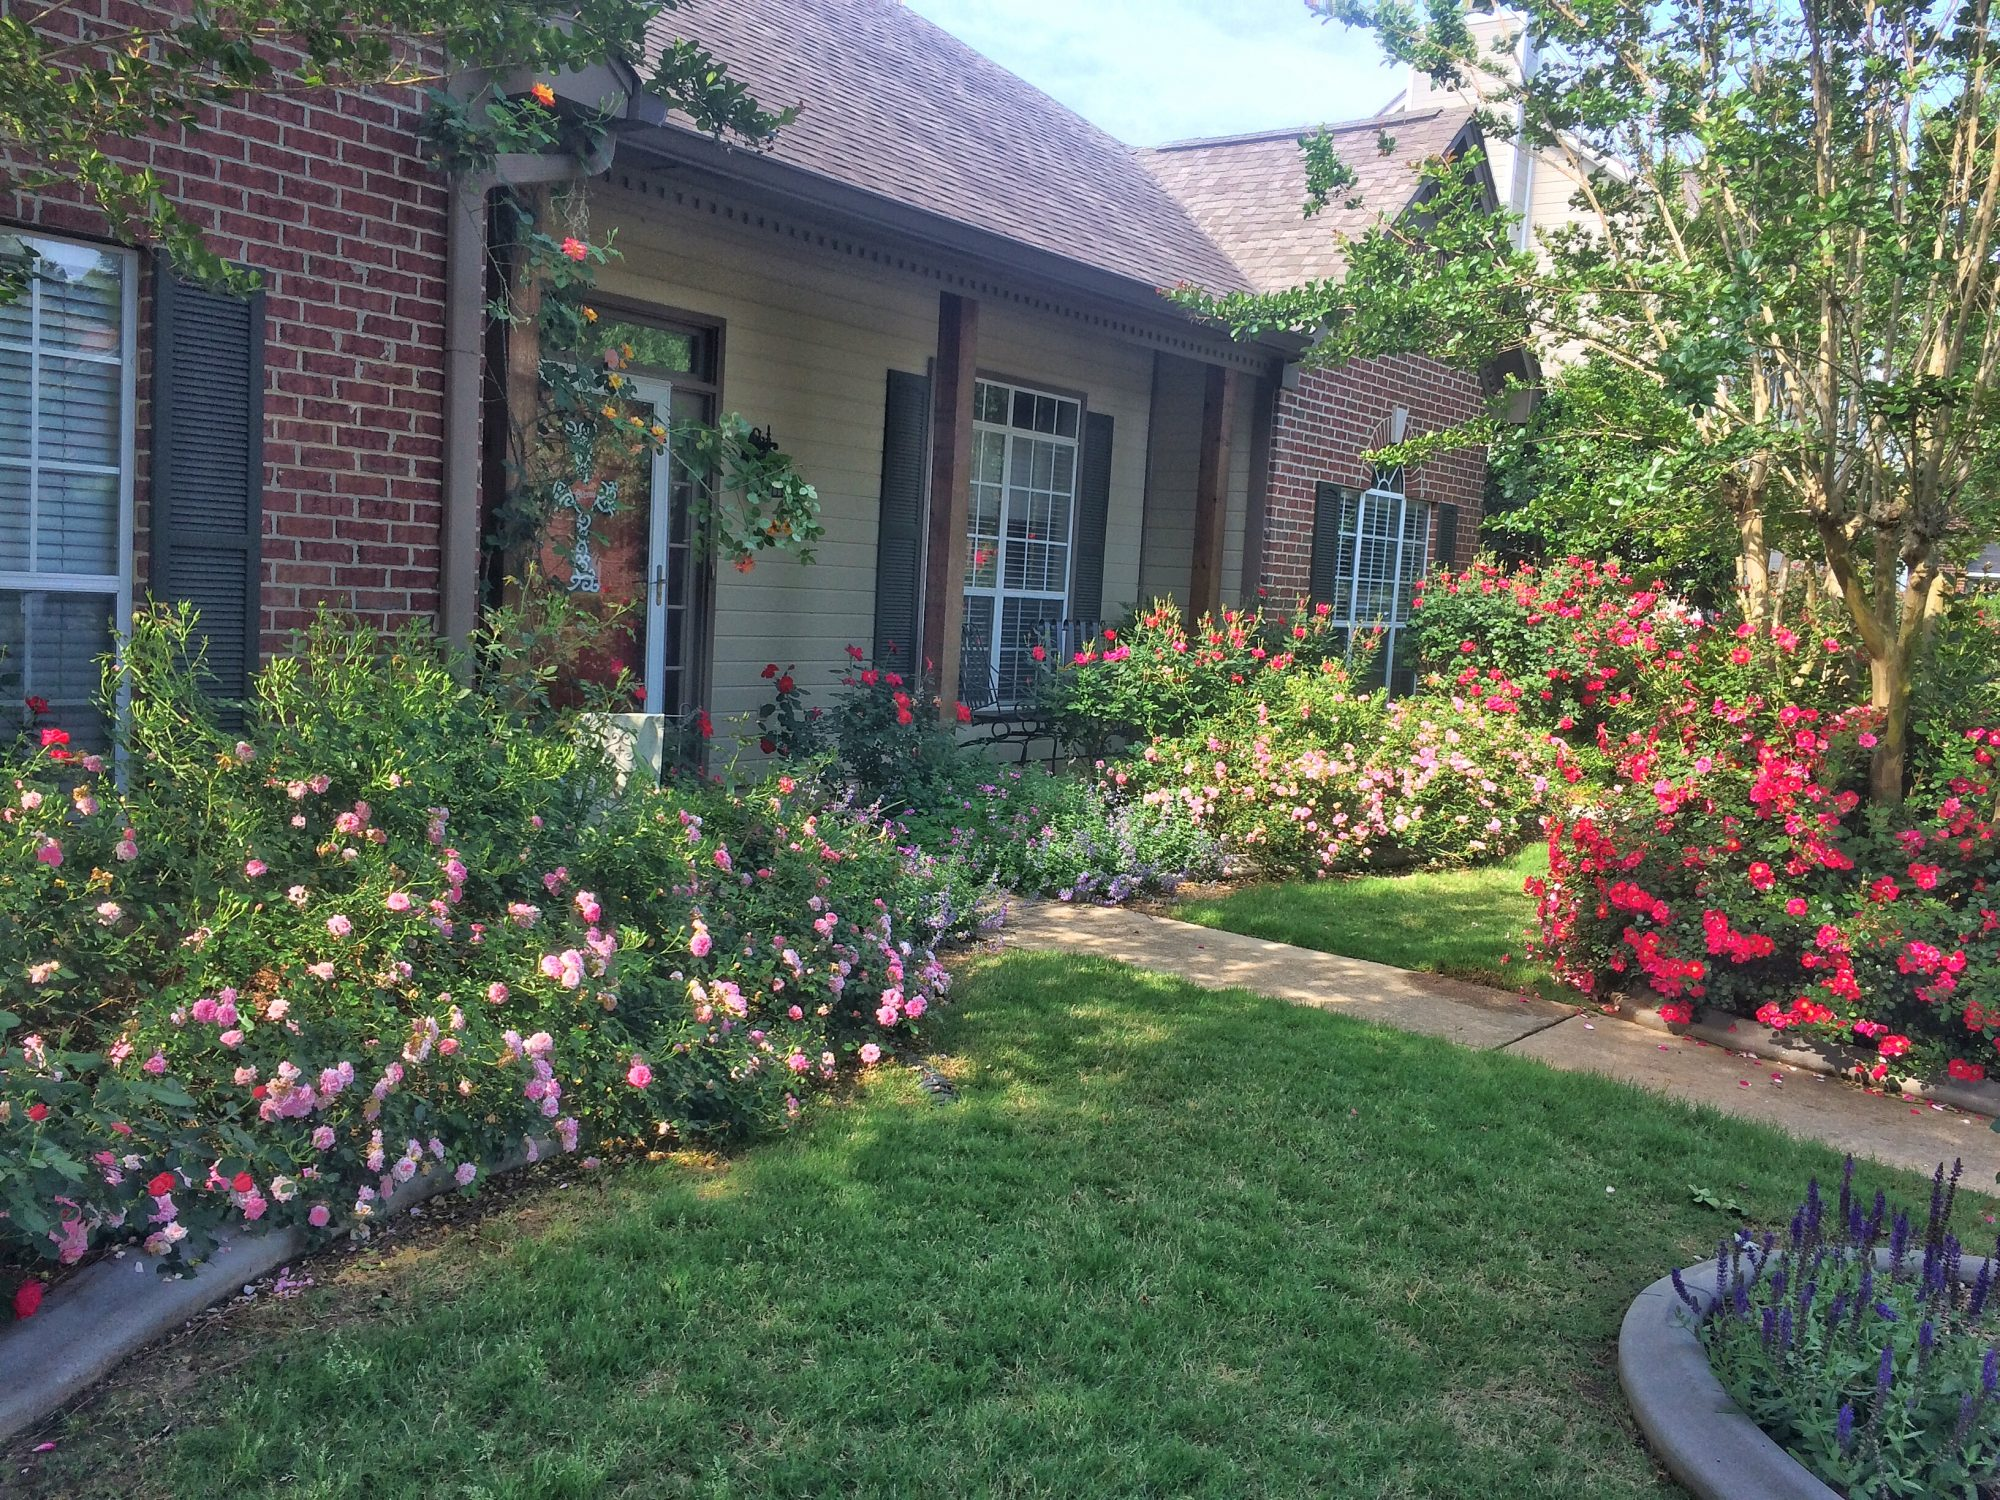 Chris VanCleave Rose Garden: Sweet Drift, Knockout, And Cherry Pie Roses